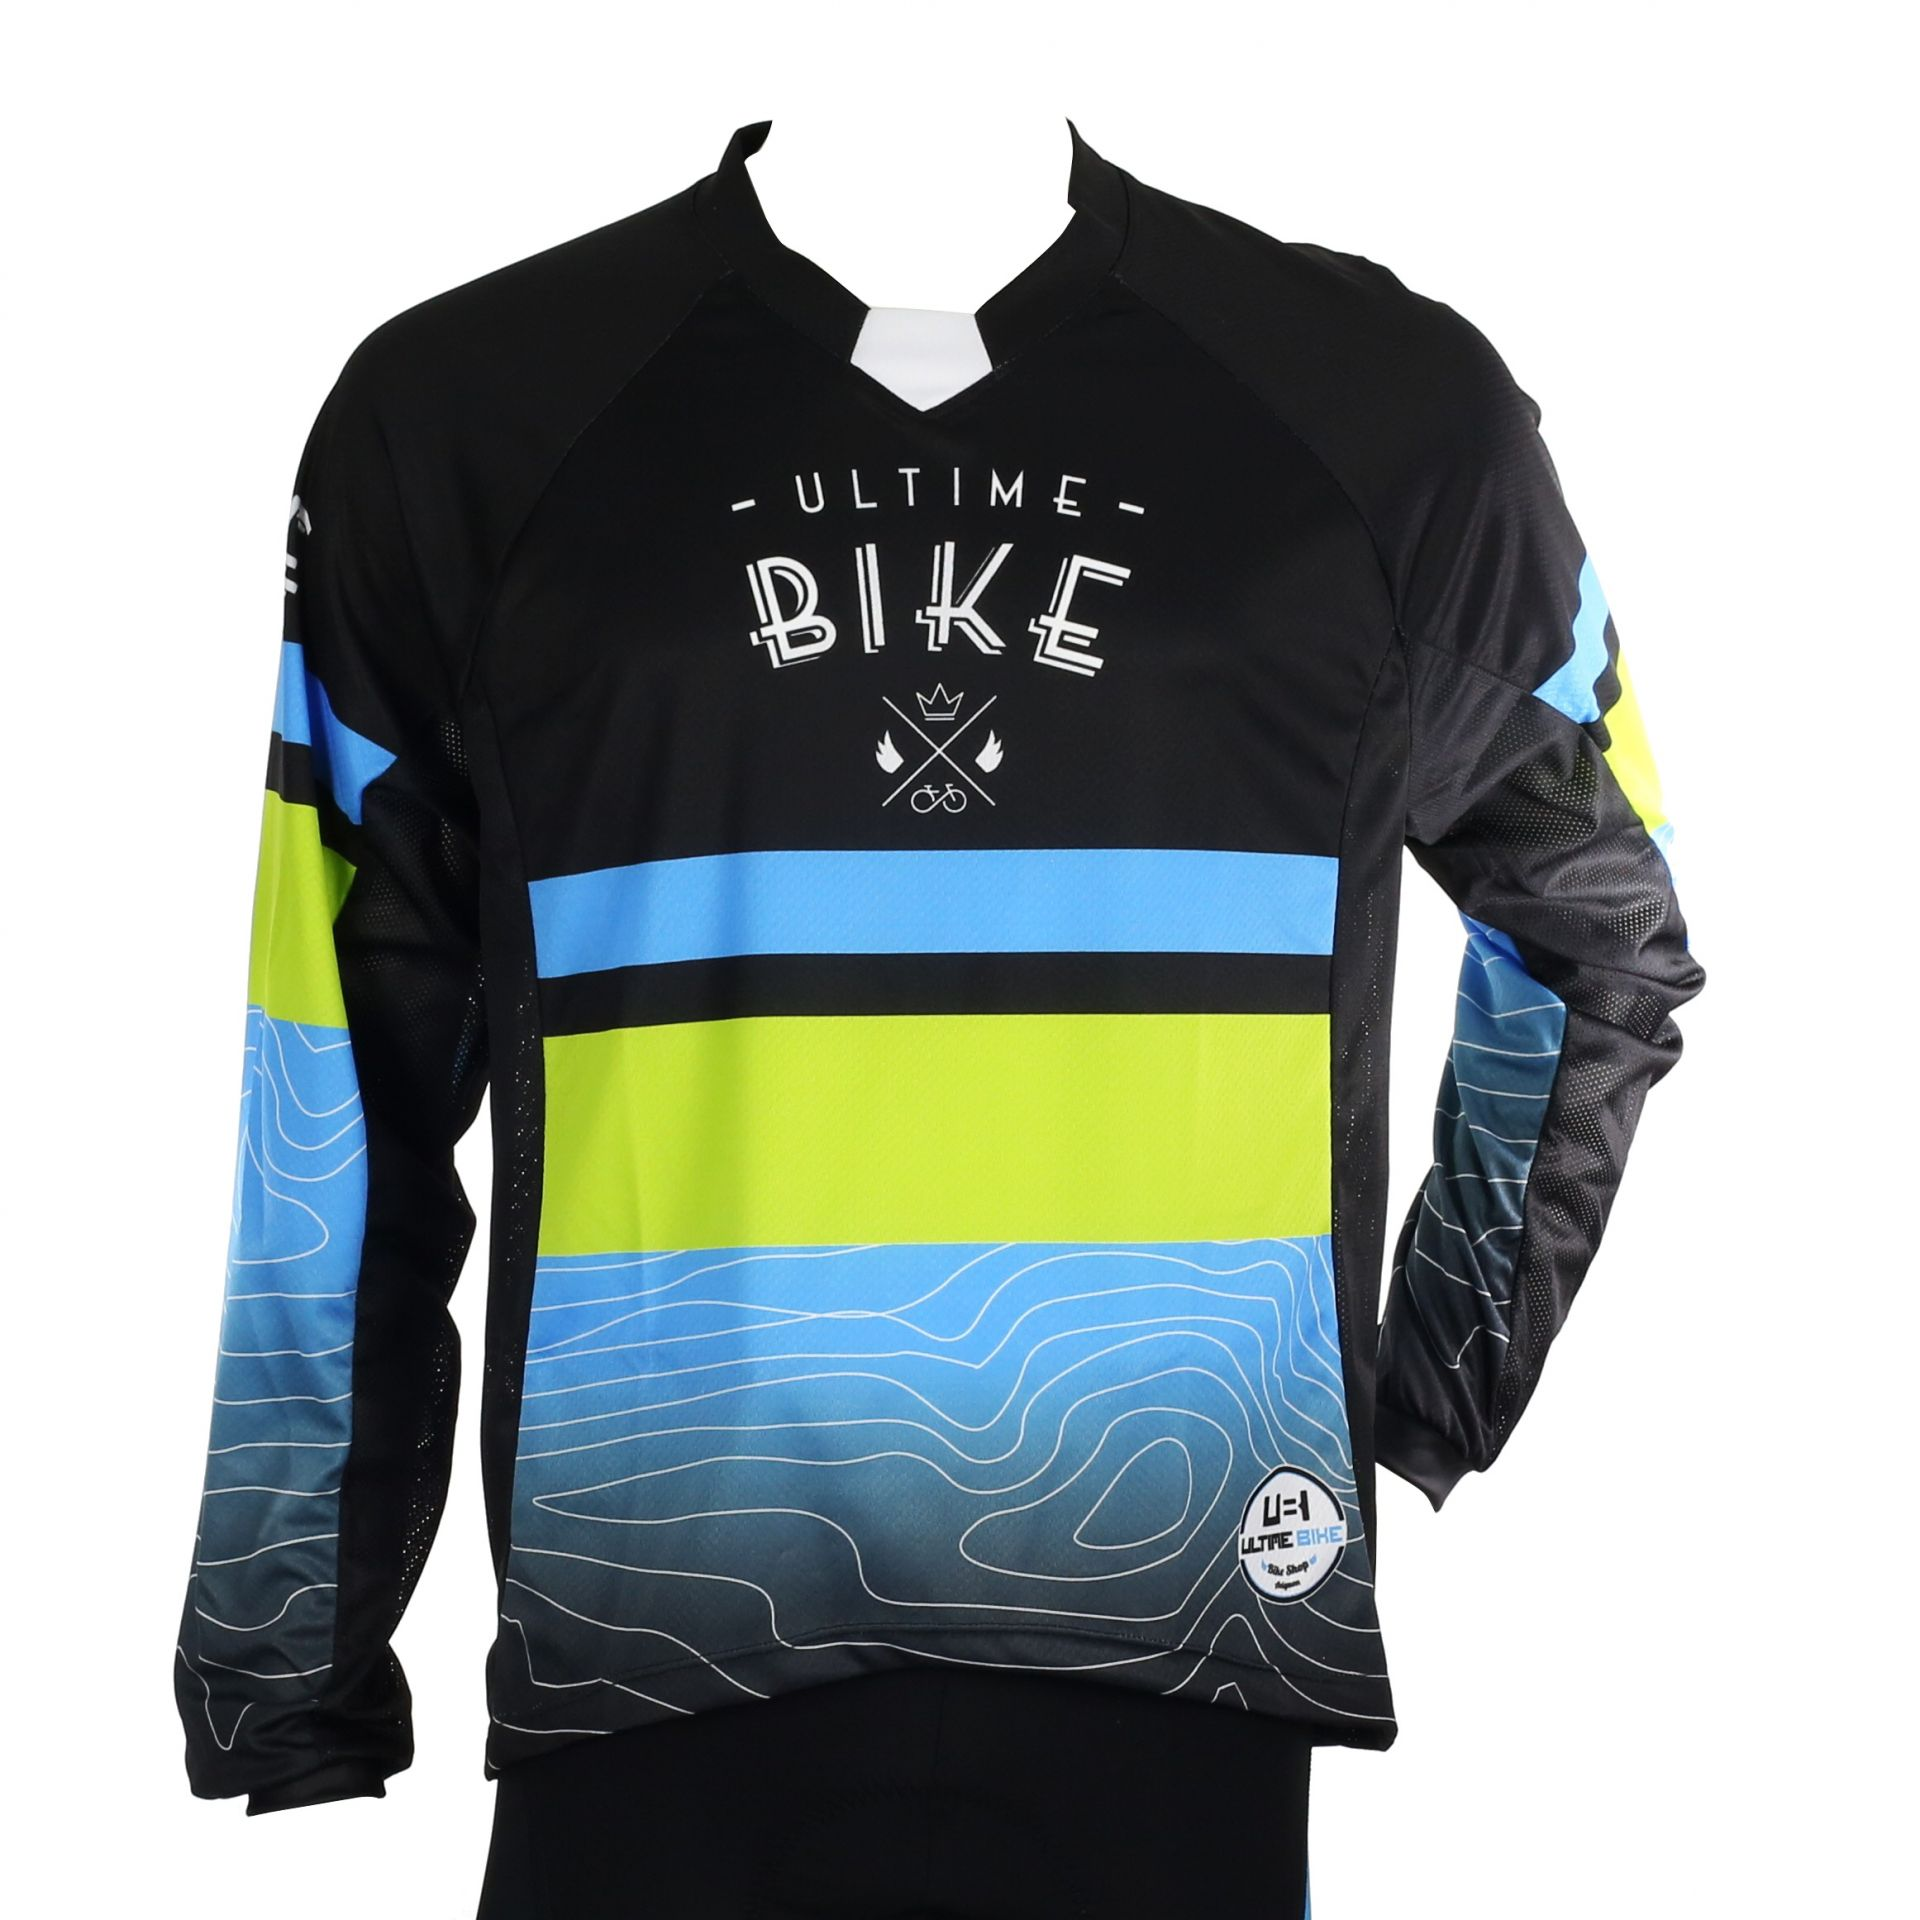 Maillot UltimeBike Enduro by TACTIC Manches longues - L